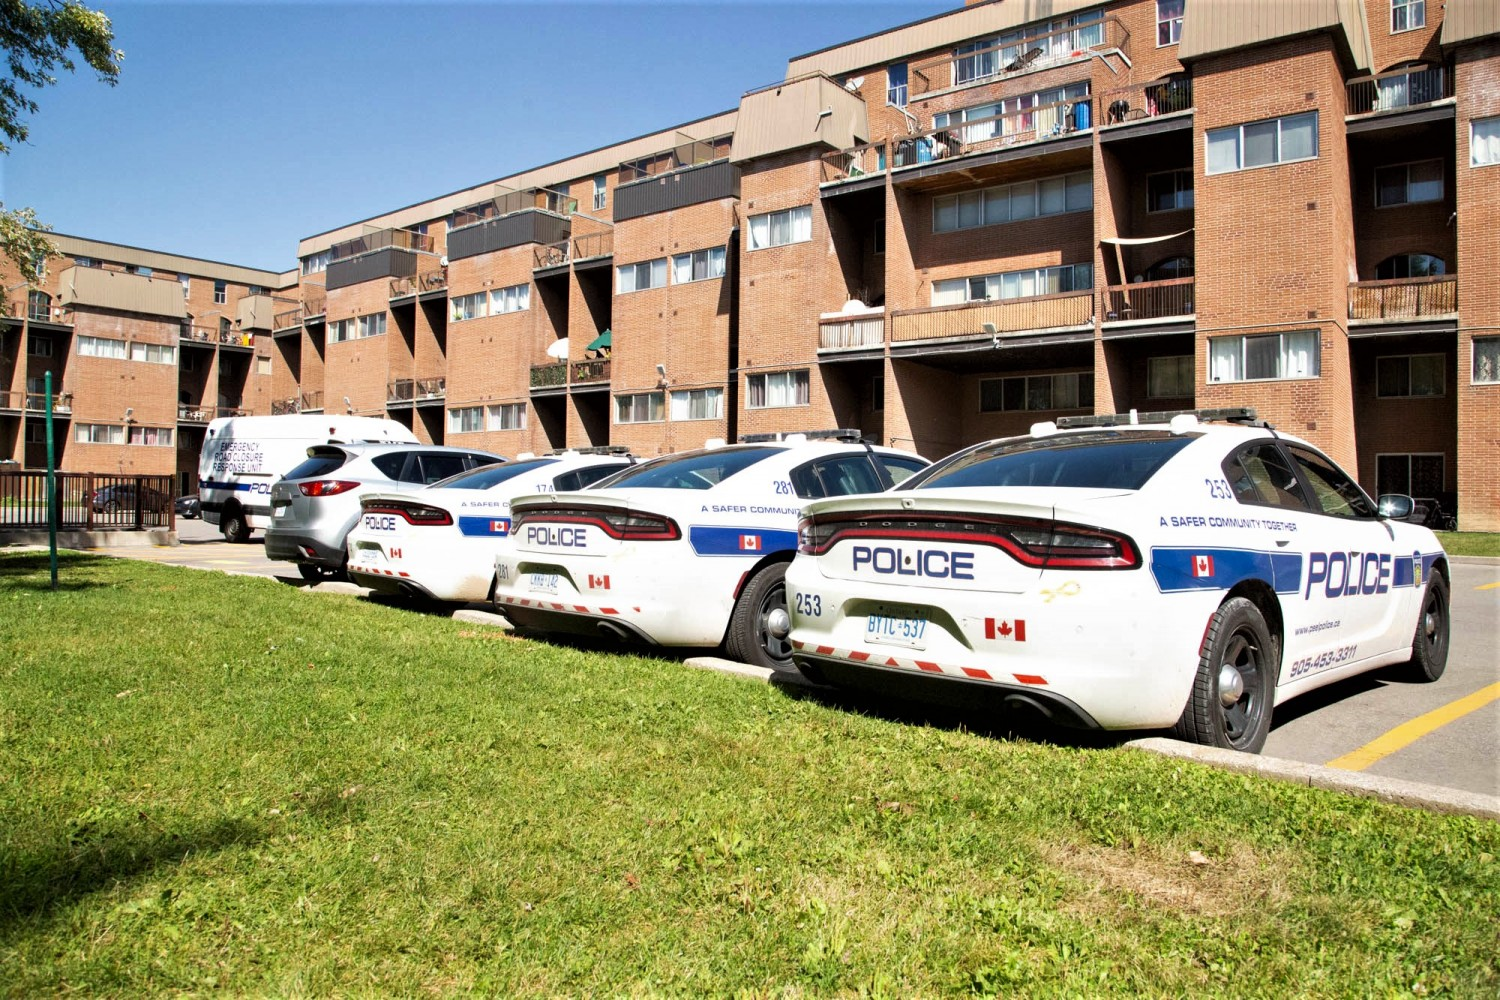 Peel saw an increase in gun crime yet again, while the illegal trade of street weapons thrives